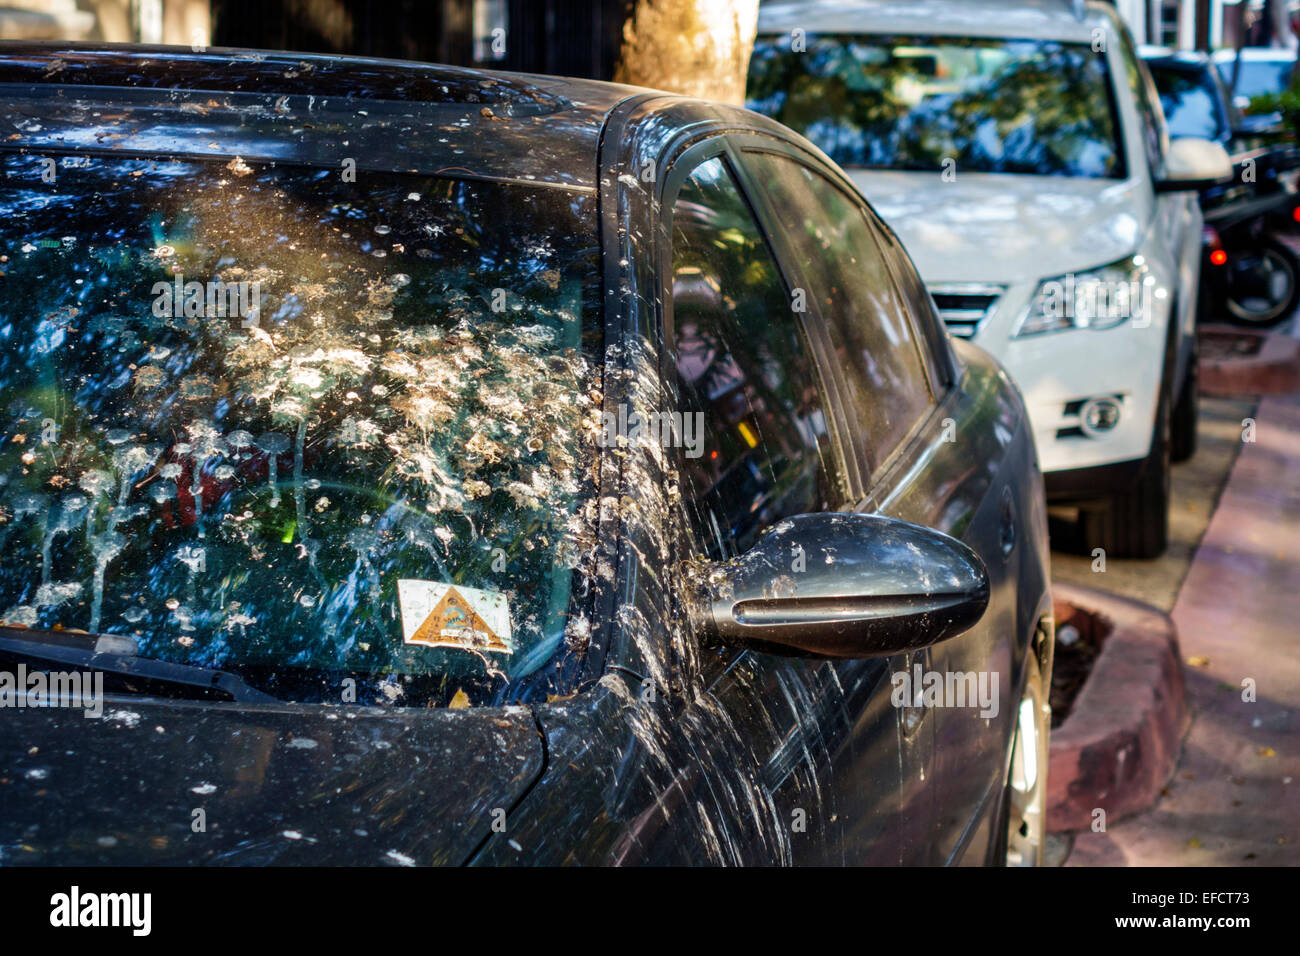 Miami Beach Florida car automobile vehicle bird droppings dirty guano excrement - Stock Image